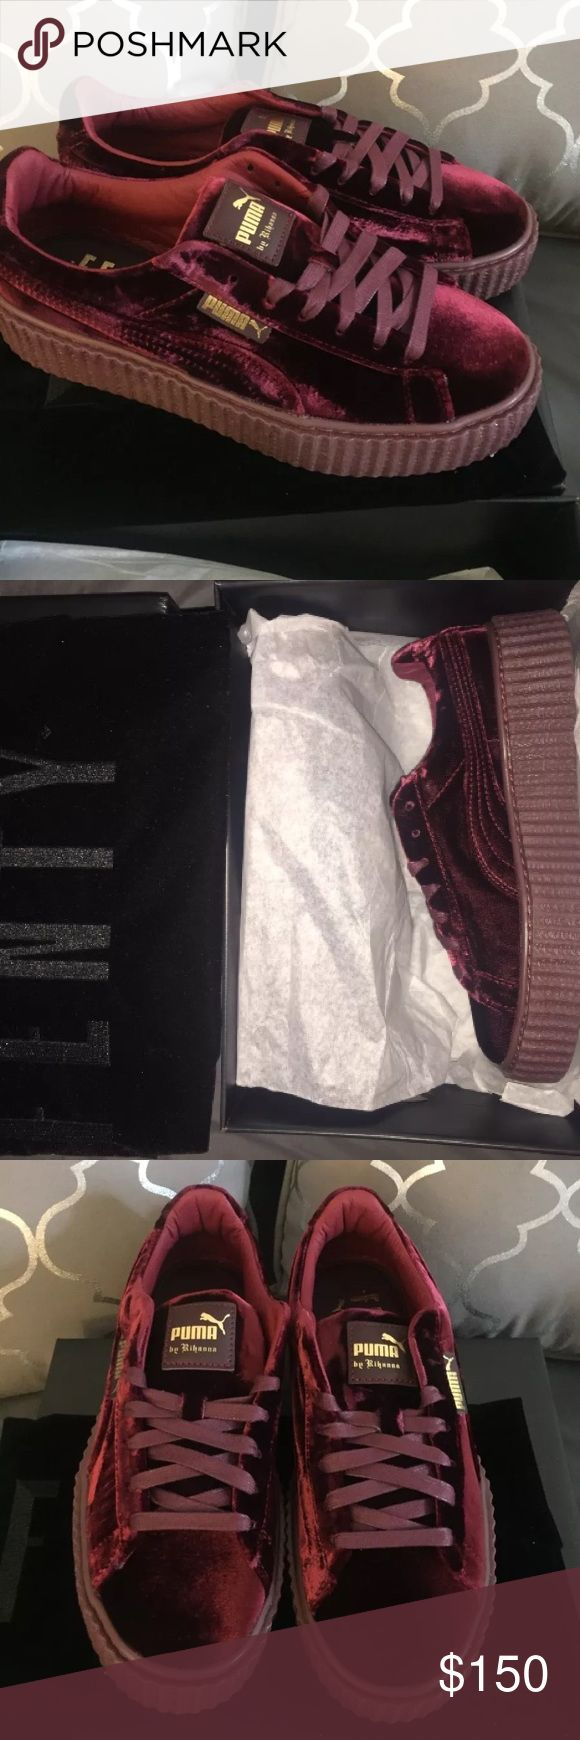 Puma Rihanna Fenty Velvet Creepers Burgundy Purple Deadstock And Brand New w/ Box. Price is highly negotiable if you buy today and Payment is not done thru Po$hmark. Texxt me ONLY when your READY TO PURCHASE 7 7 0 5 8 0 4 8 7 8 Puma Shoes Athletic Shoes